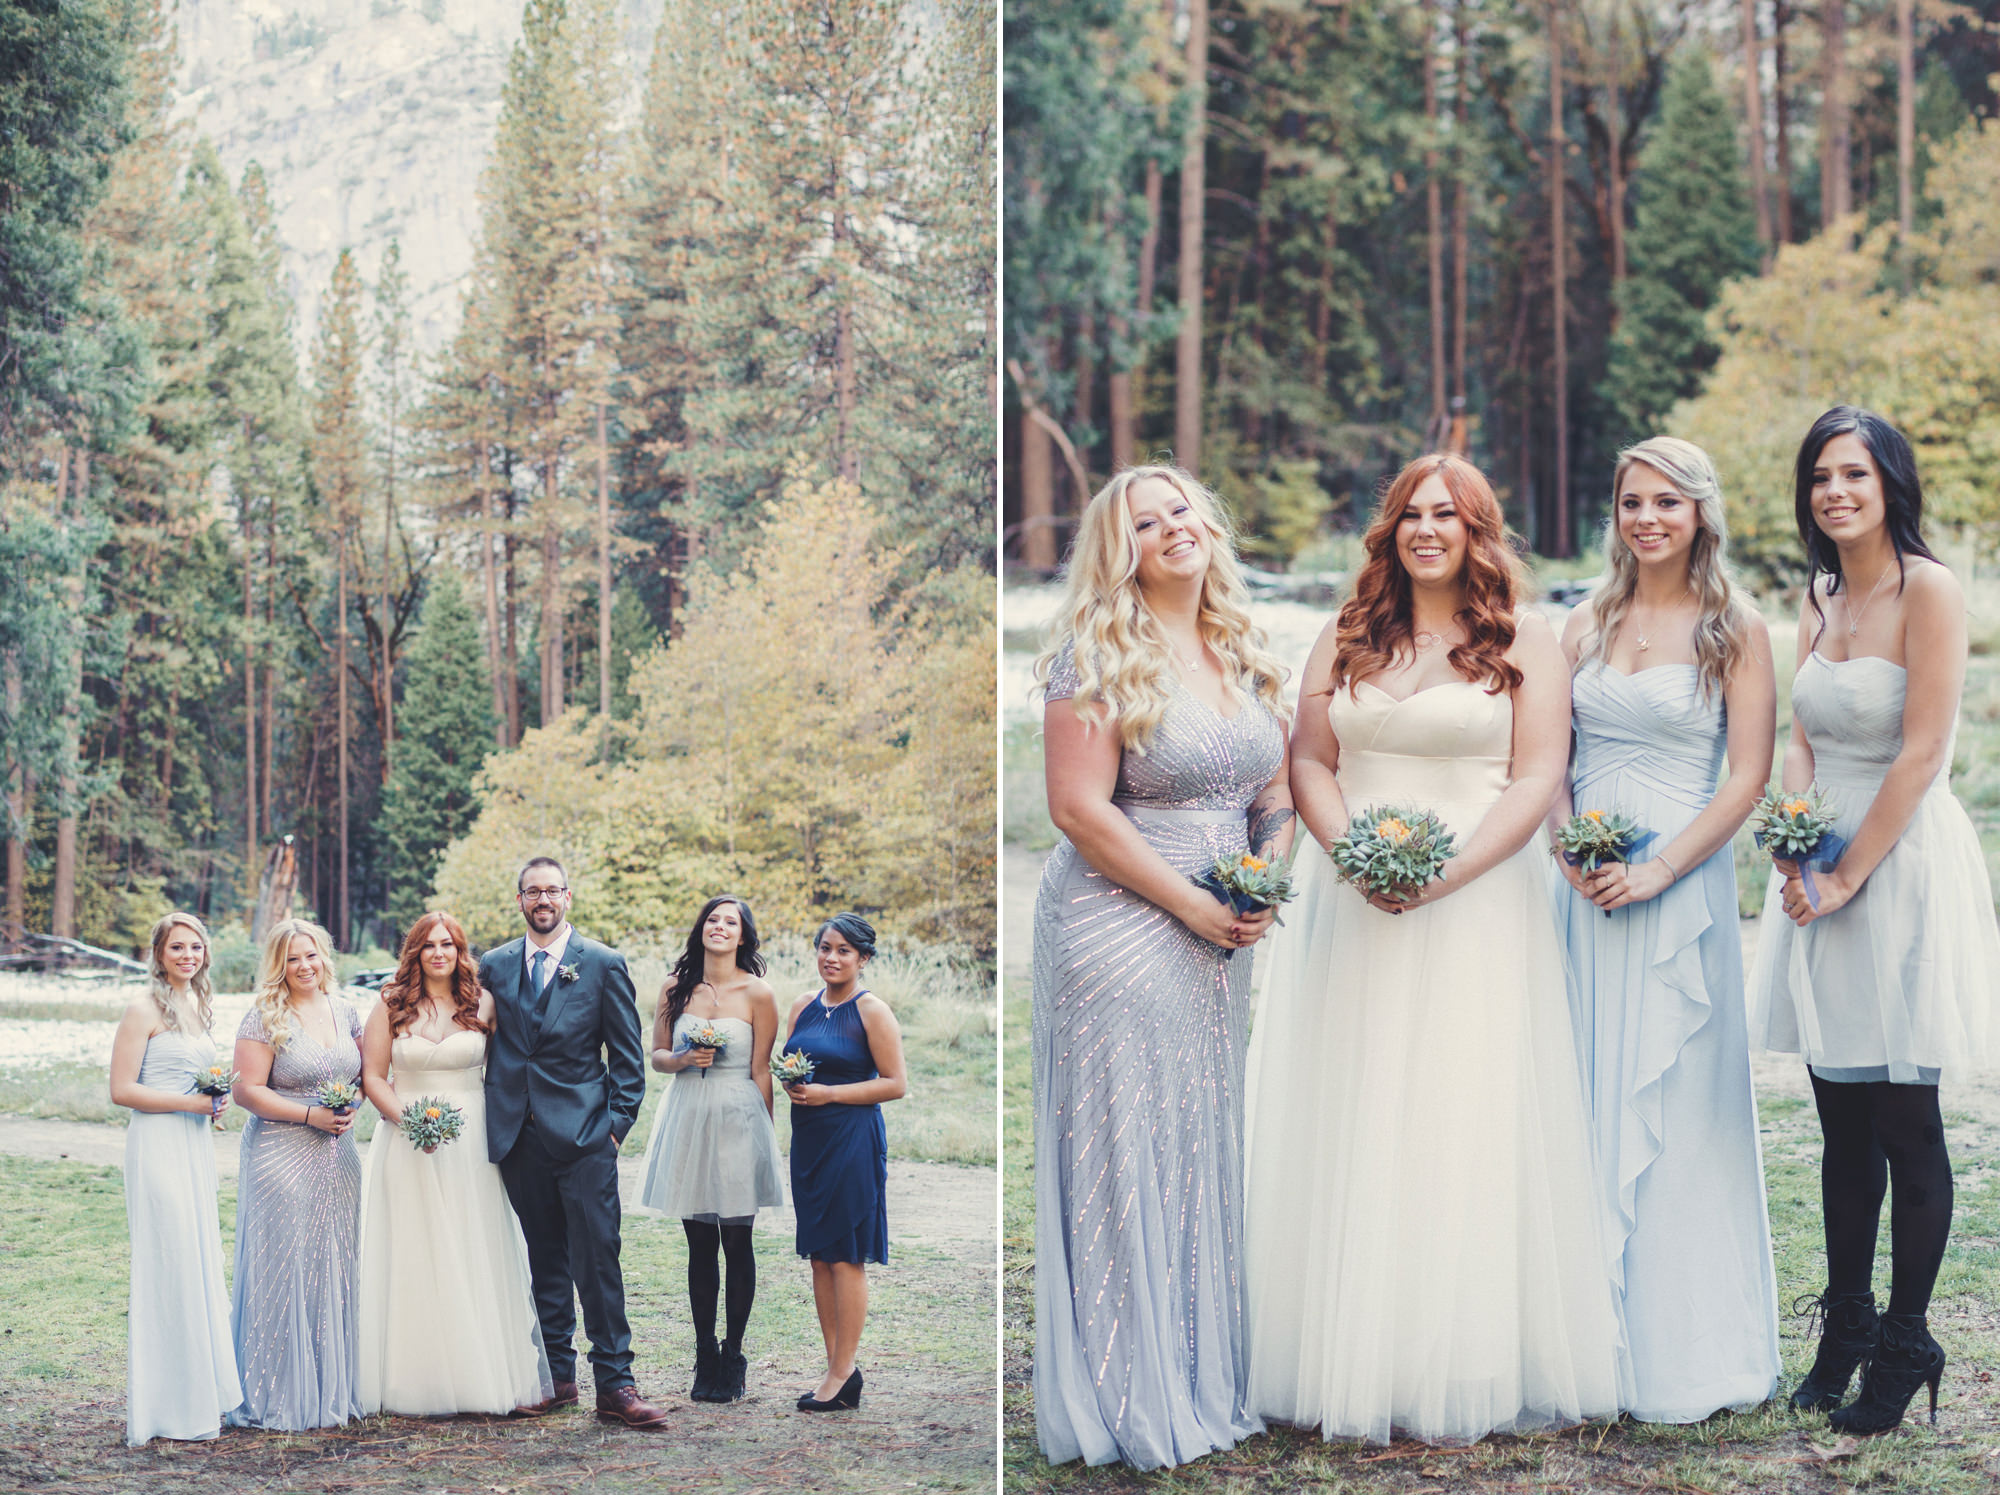 Yosemite wedding ©Anne-Claire Brun 73